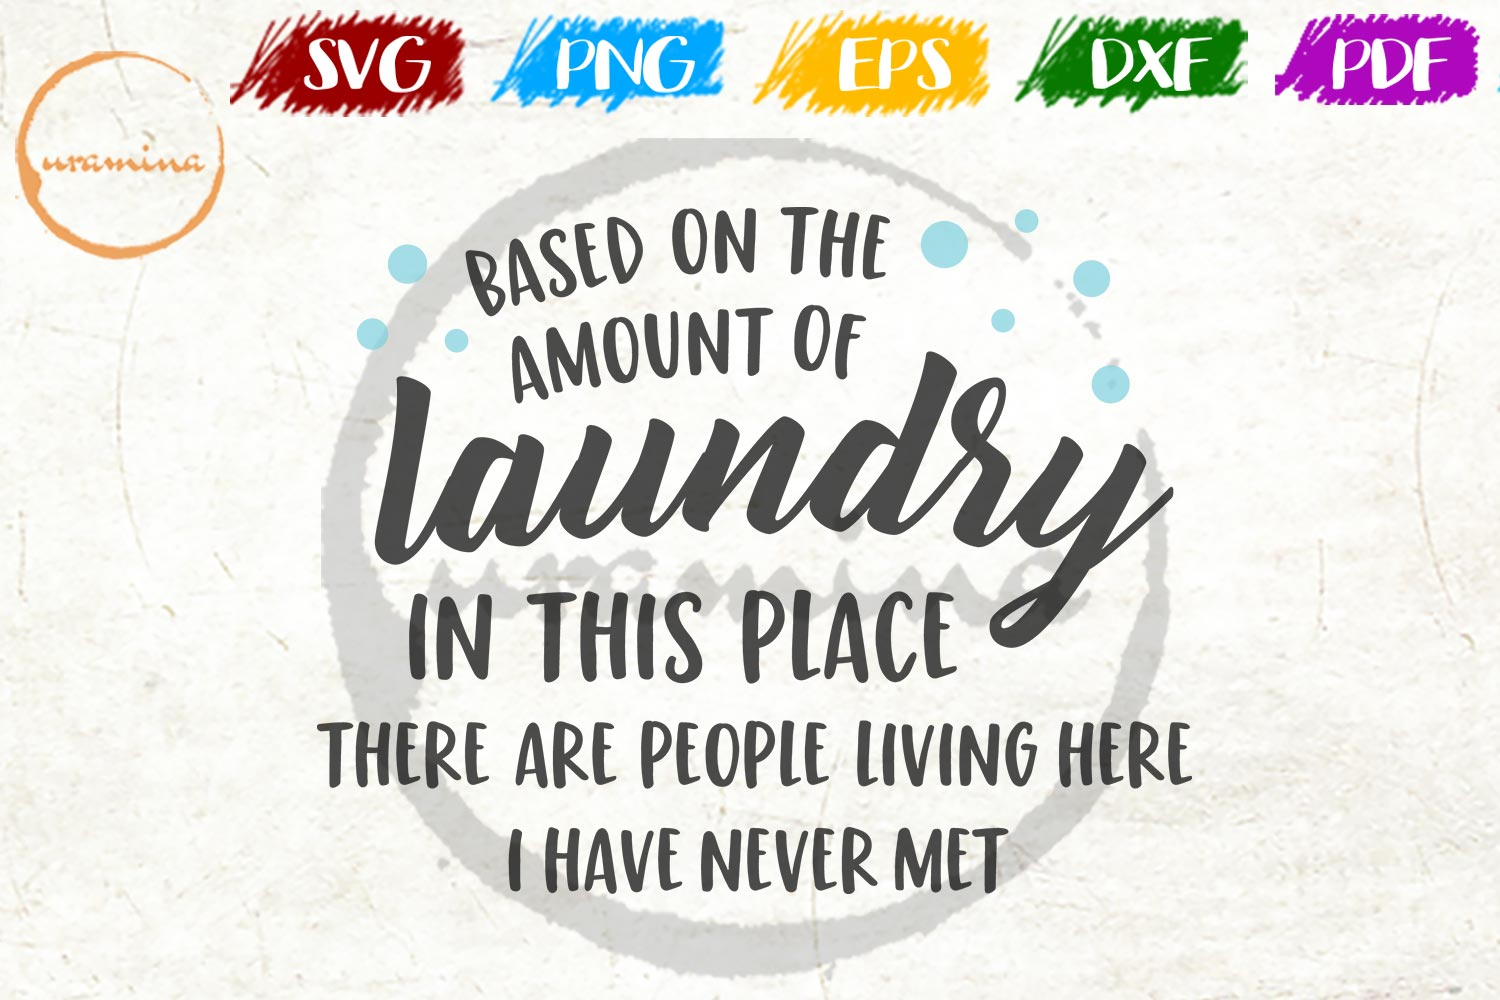 Download Free Based On The Amount Of Laundry Graphic By Uramina Creative Fabrica for Cricut Explore, Silhouette and other cutting machines.